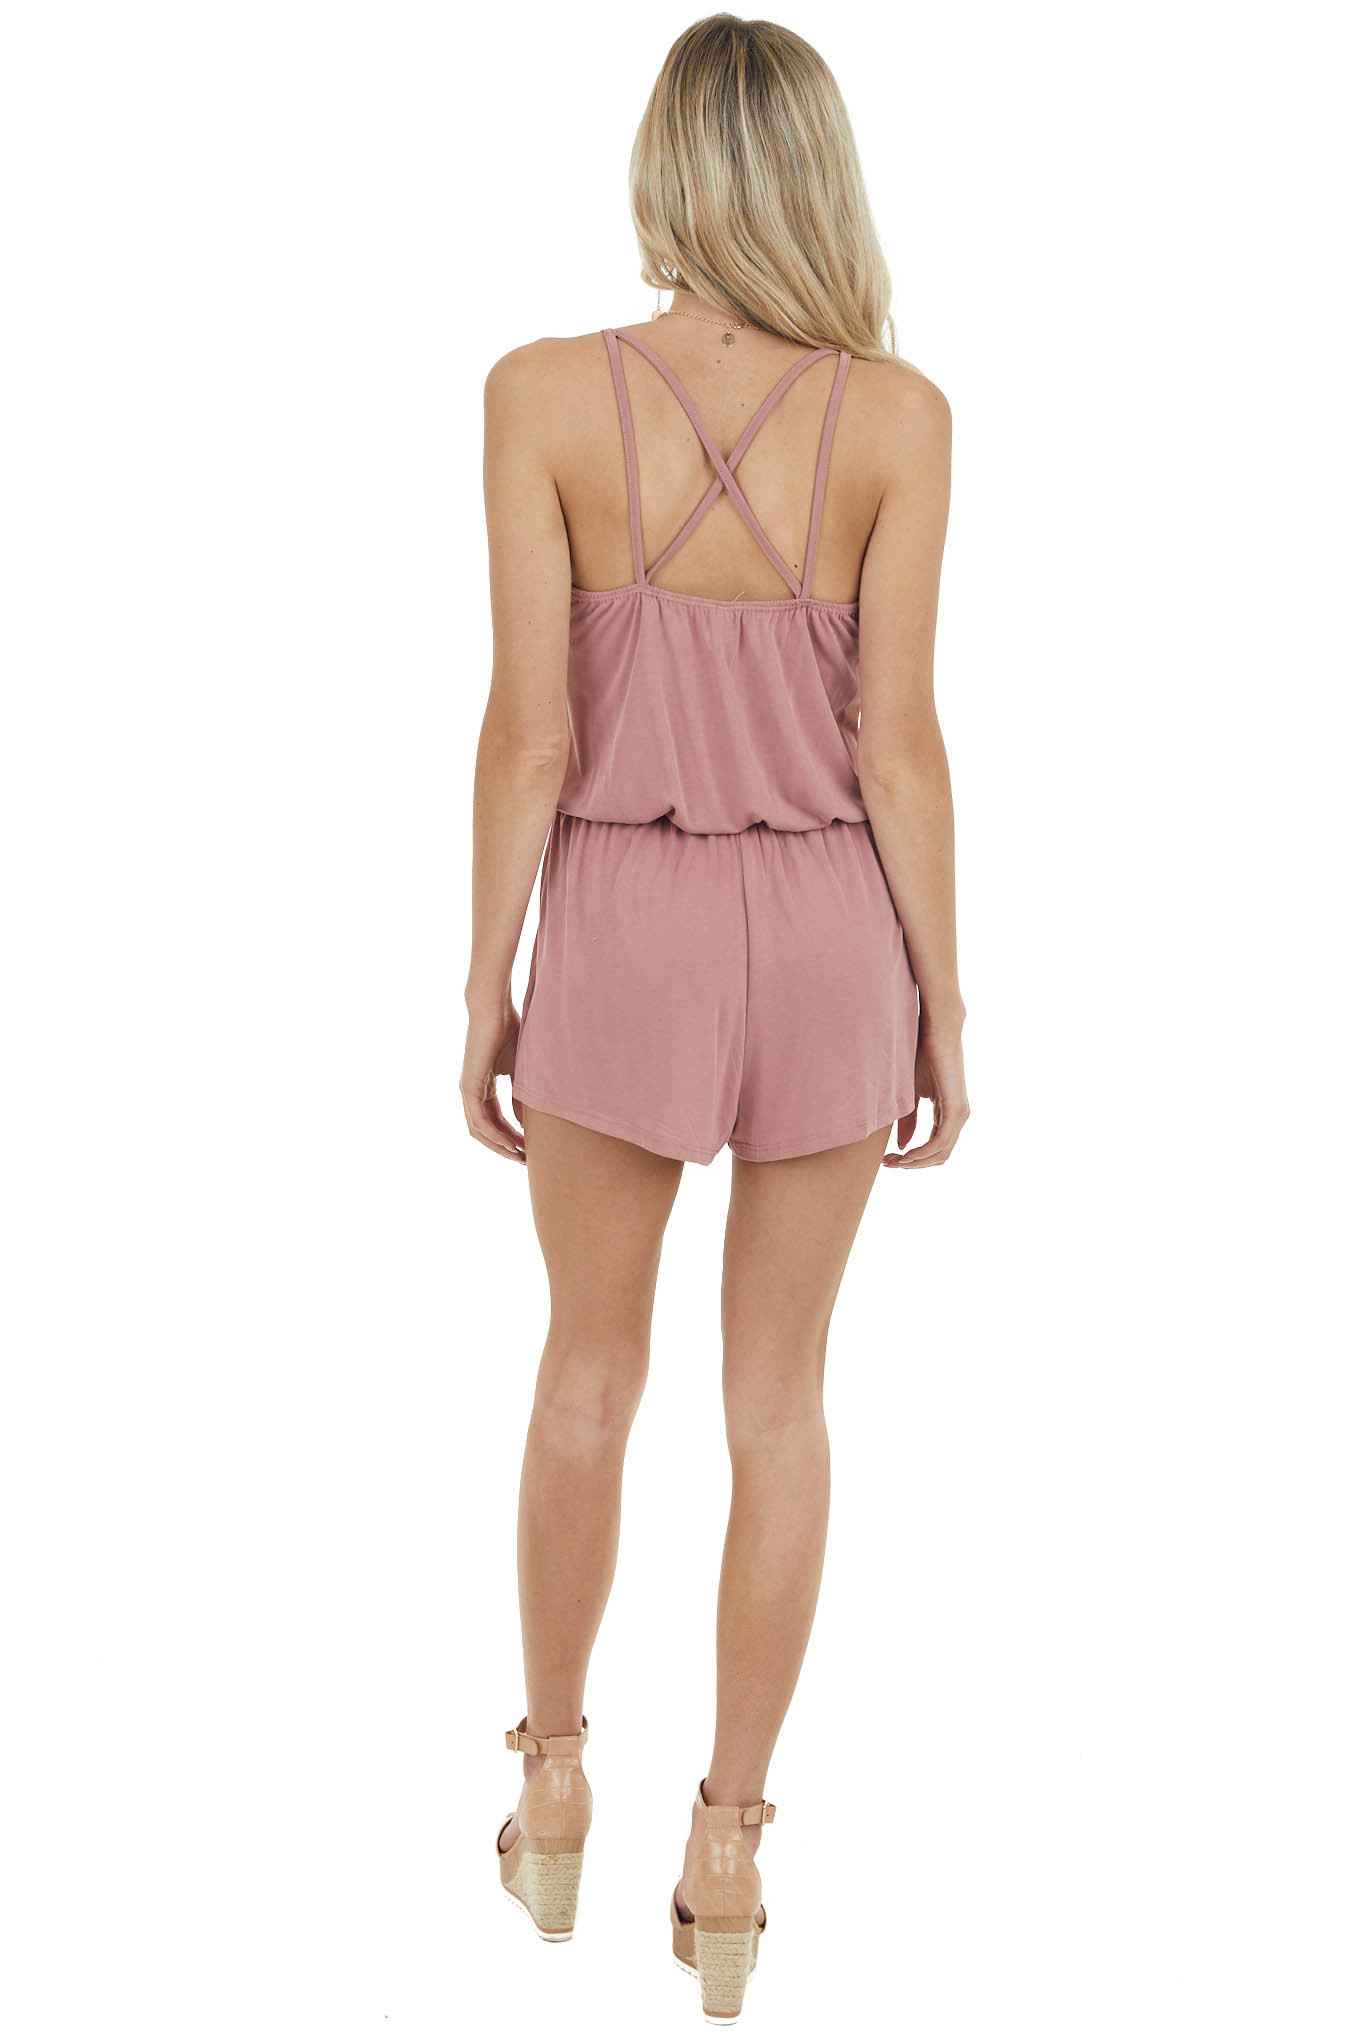 Rose Spaghetti Strap Romper with Back Criss Cross Detail